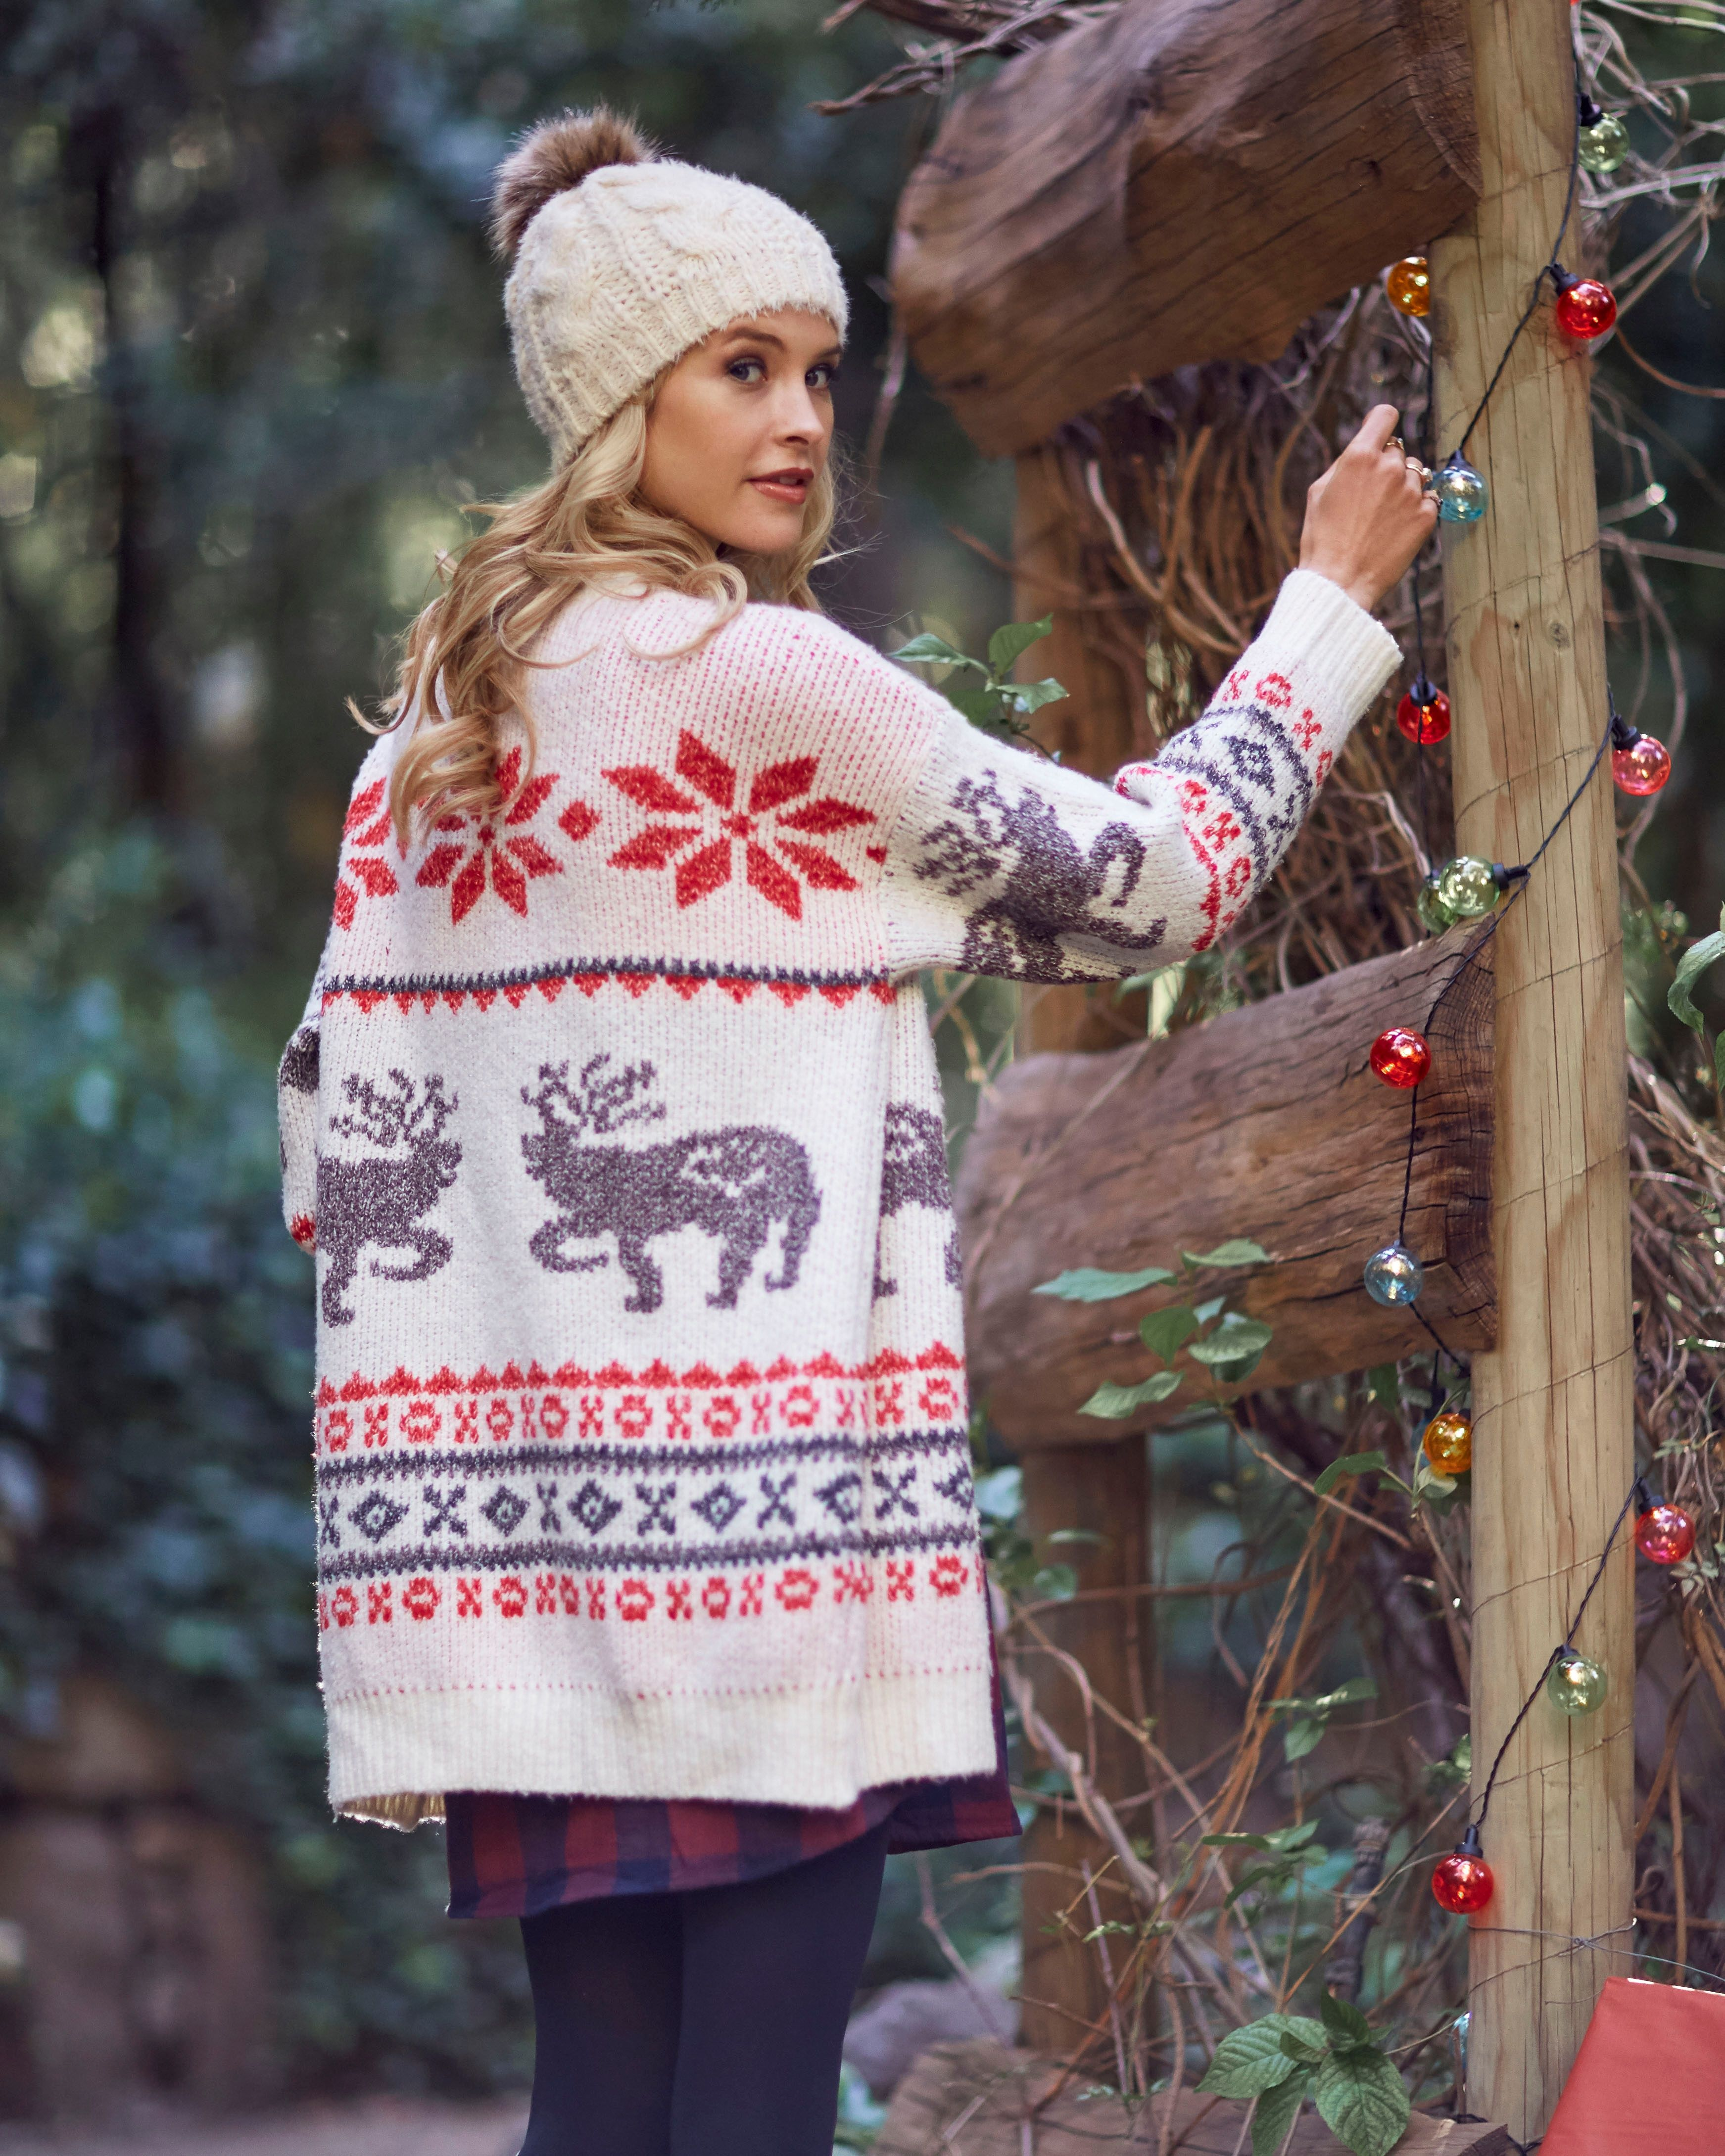 07d910a355a87 Bundle up for the festive season ahead! Our Reindeer Cardigan Sweater is  perfect for decorating the house and Christmas morning.